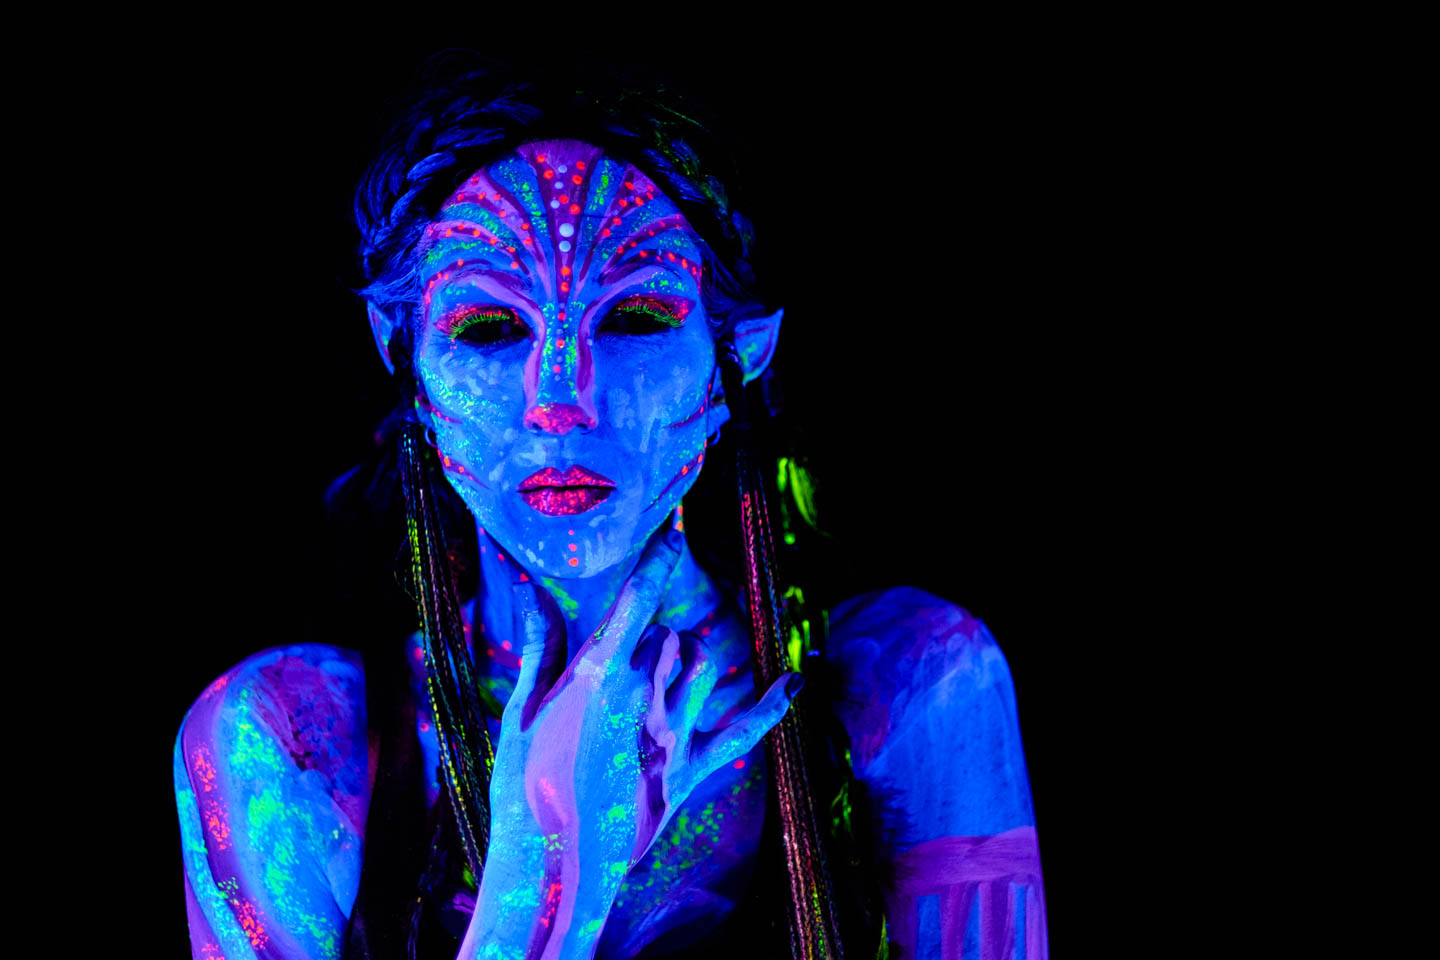 Avatar inspired blacklight model